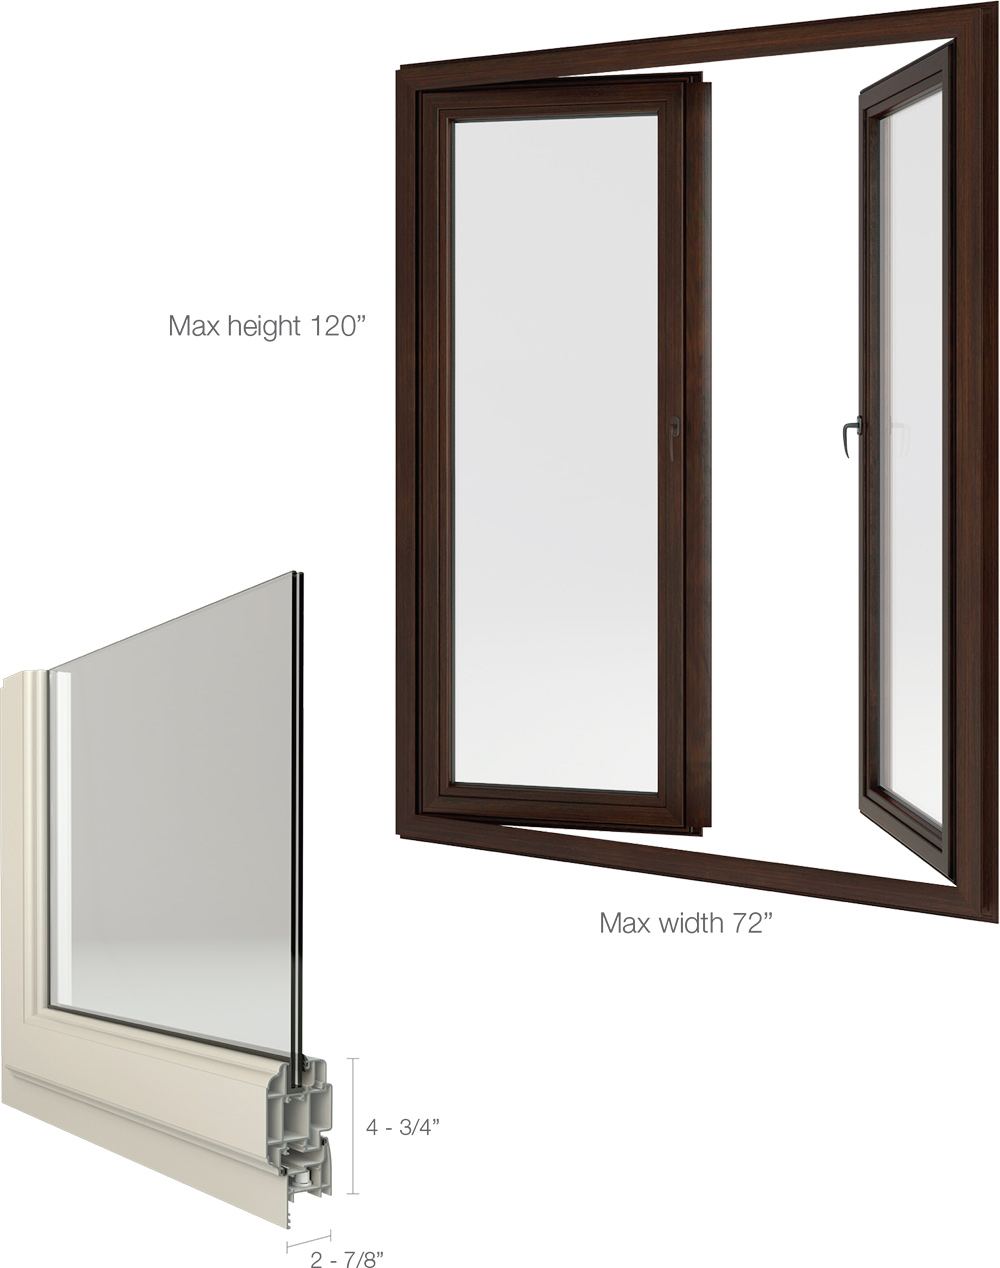 Single casement windows - European Style Push Out Casement Windows Available As Single Or Double Casements The Double Casement Has A Built In Astragal That Moves With The Inactive